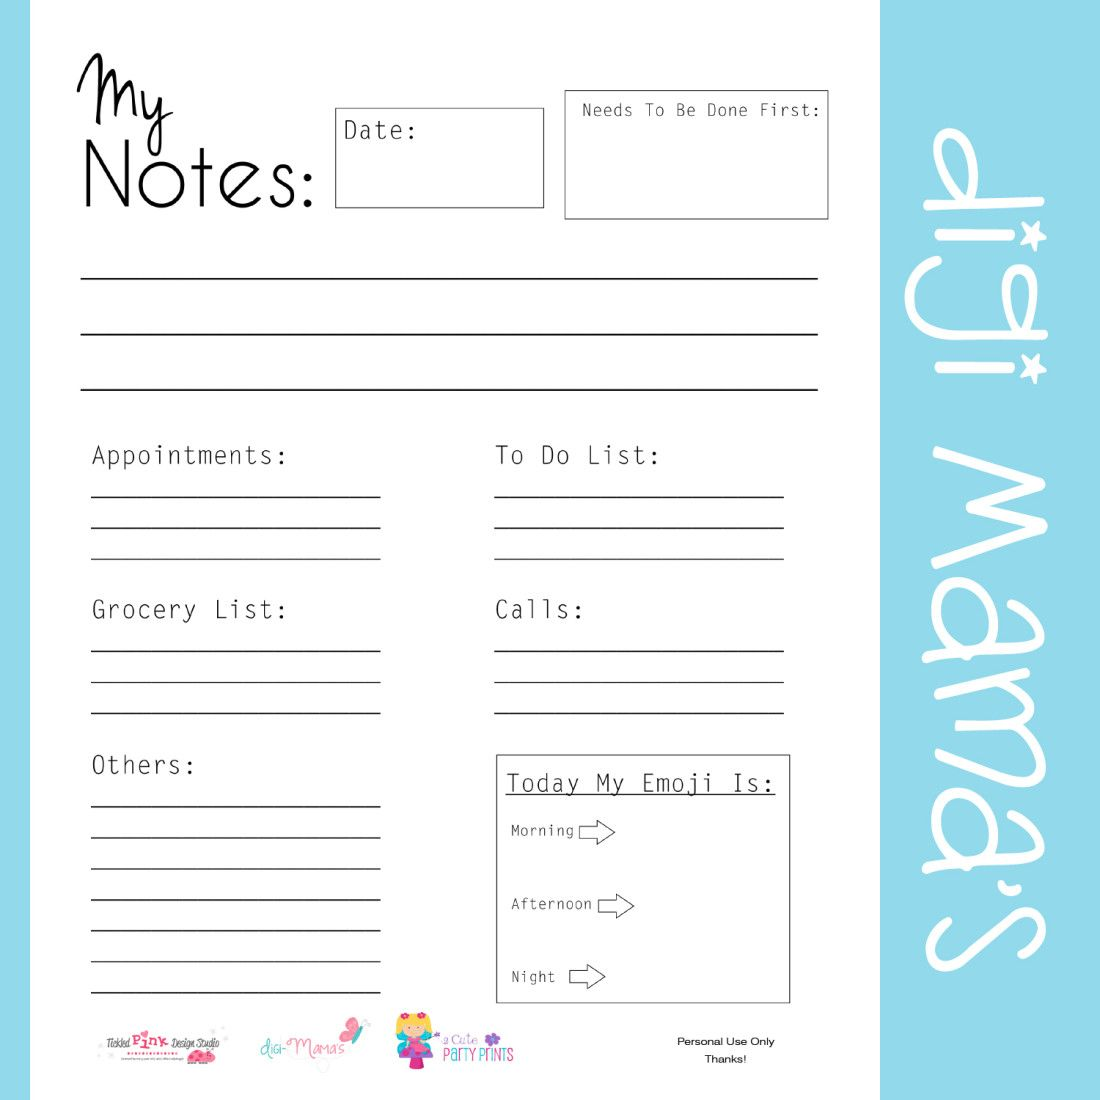 Free My Notes Daily Planner Printable Organizing Pinterest